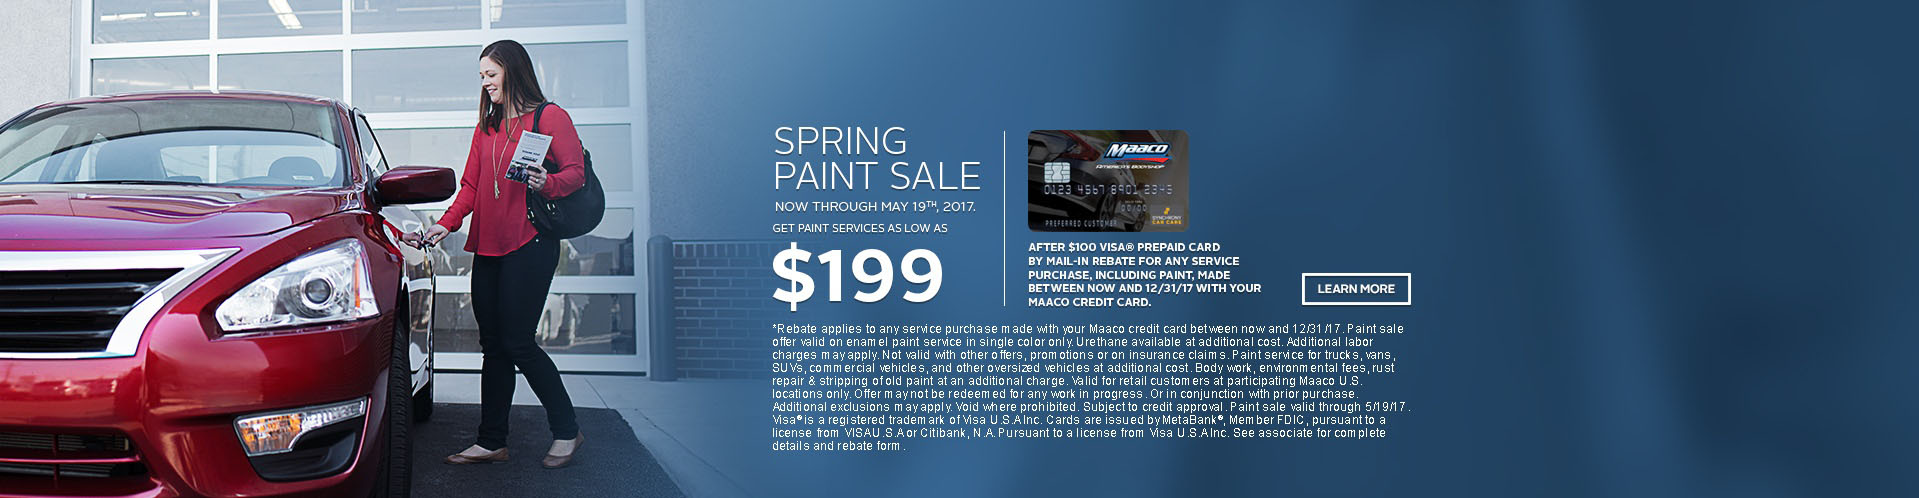 Maaco: Spring Paint Sale Starting at $199 after $100 rebate from using your Maaco Credit Card, click Learn More for further details.